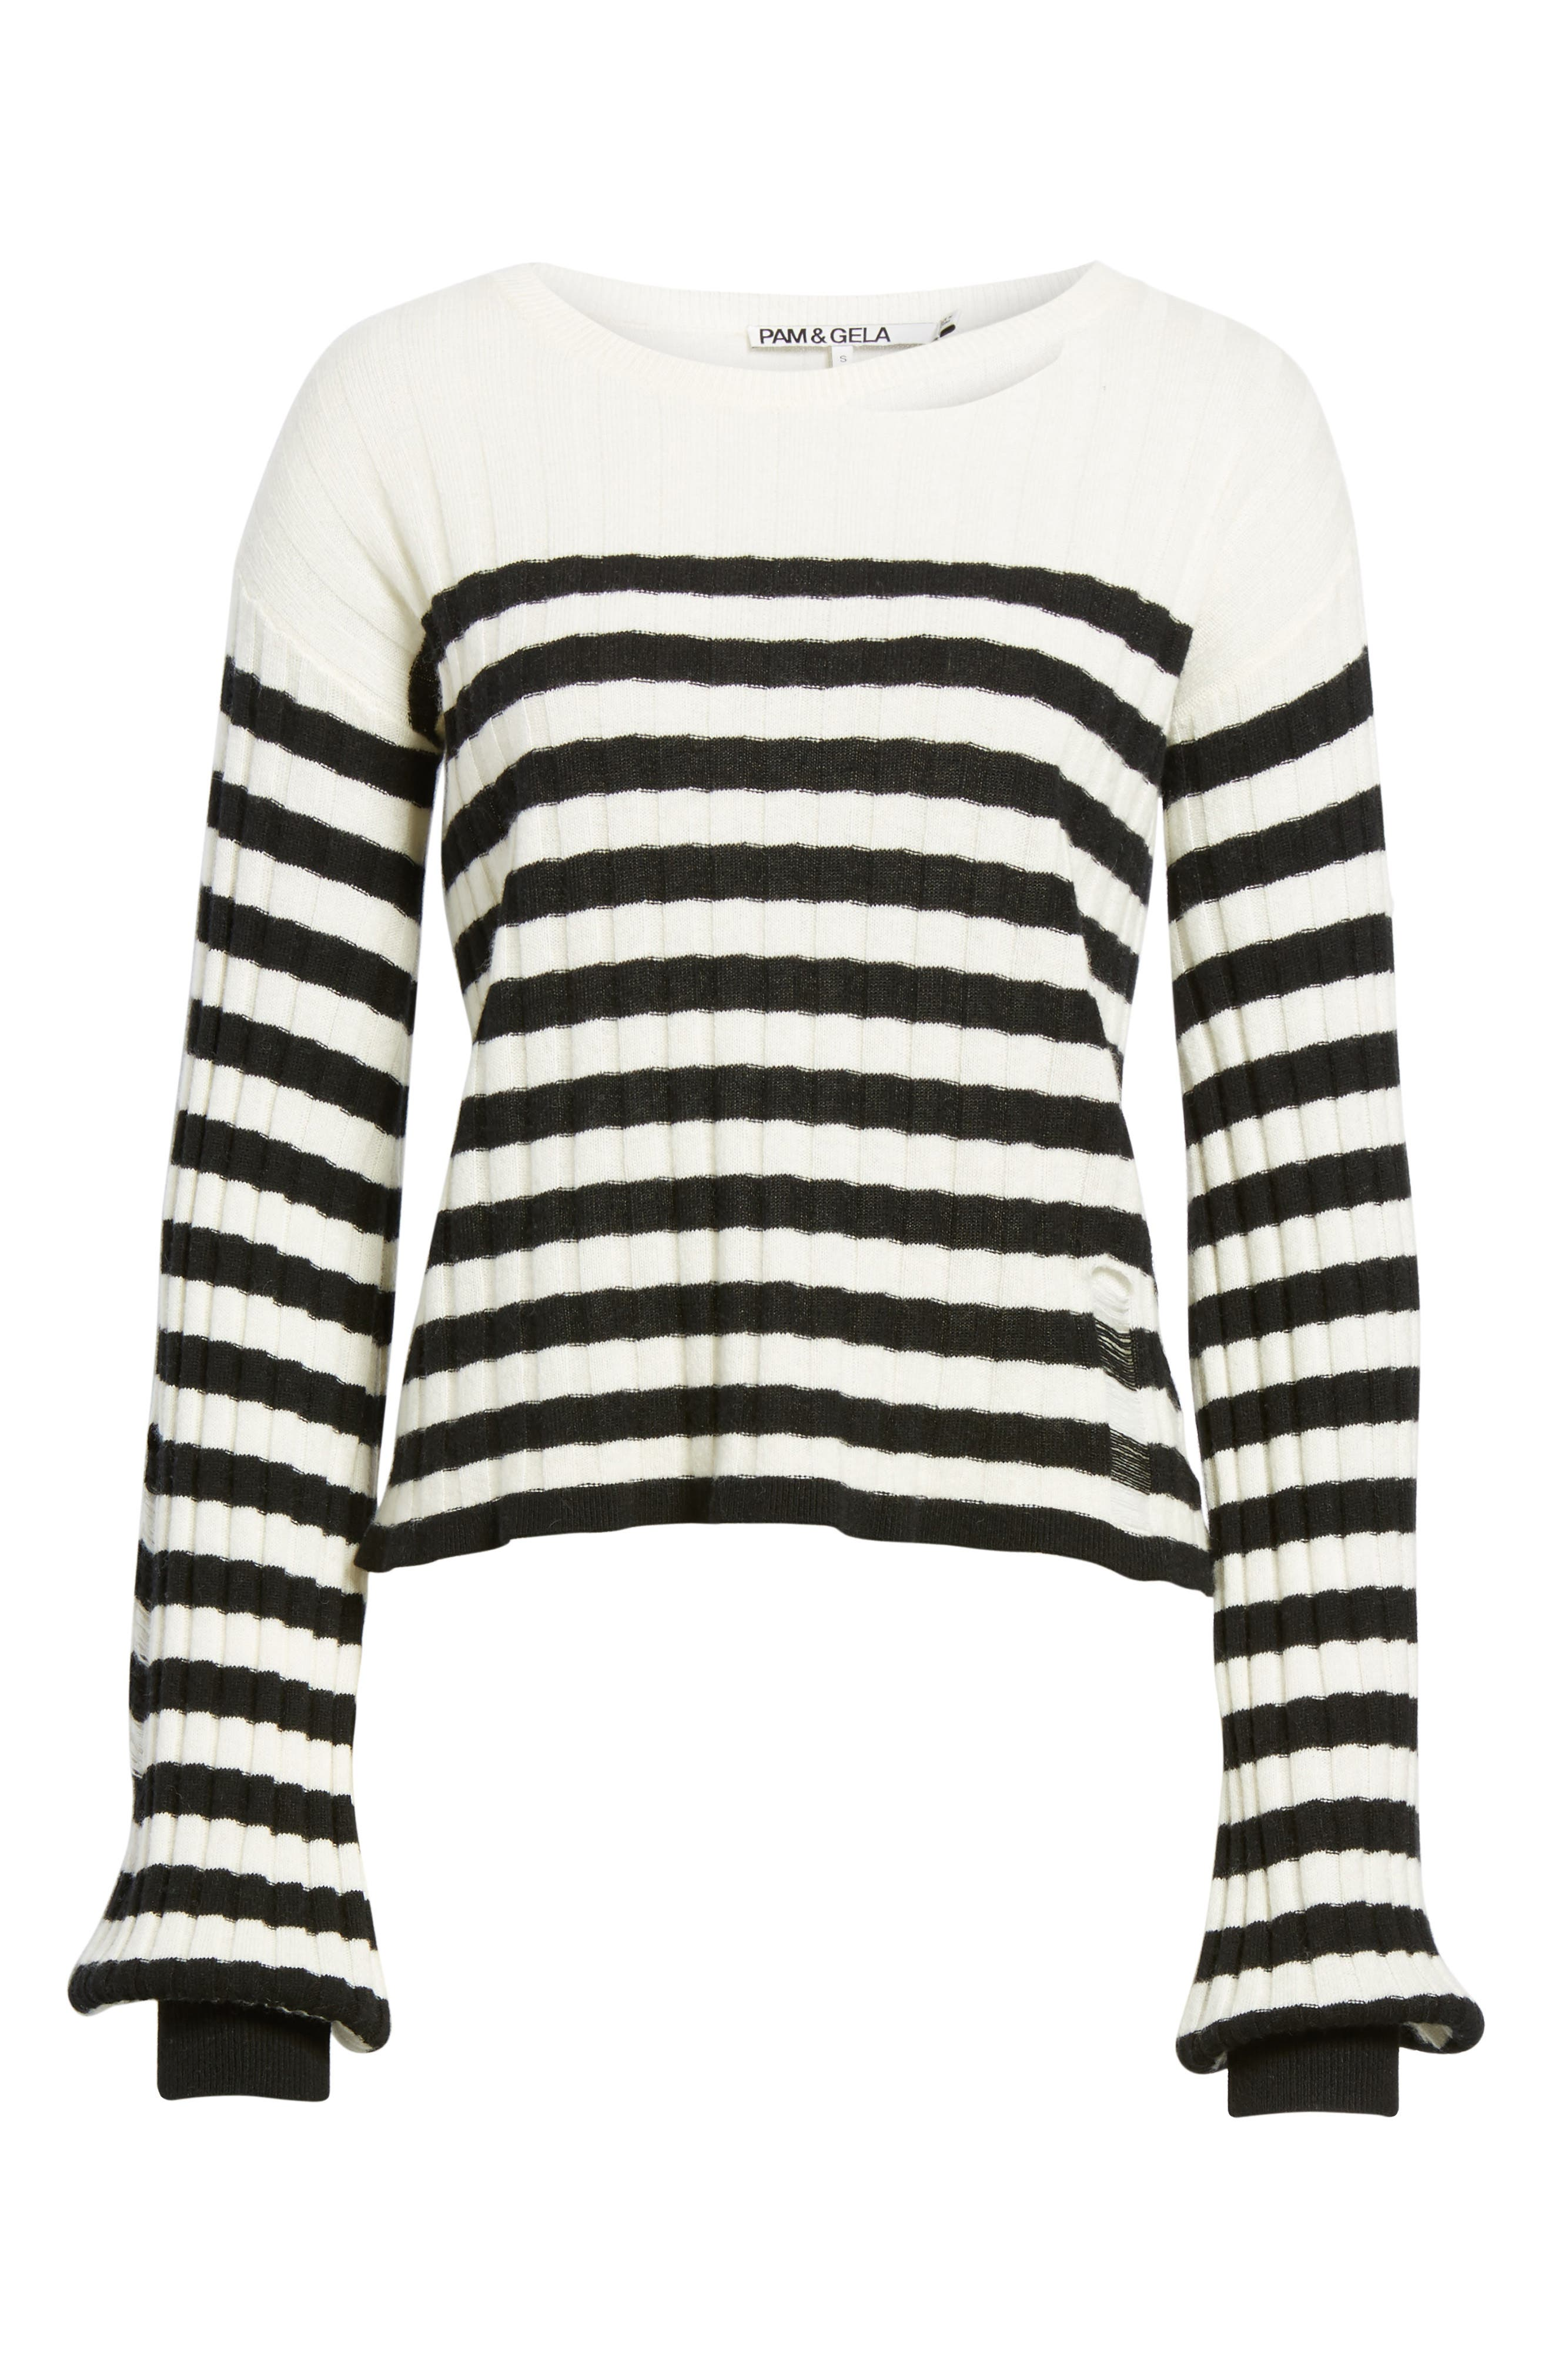 Destroyed Stripe Sweater,                             Alternate thumbnail 6, color,                             004